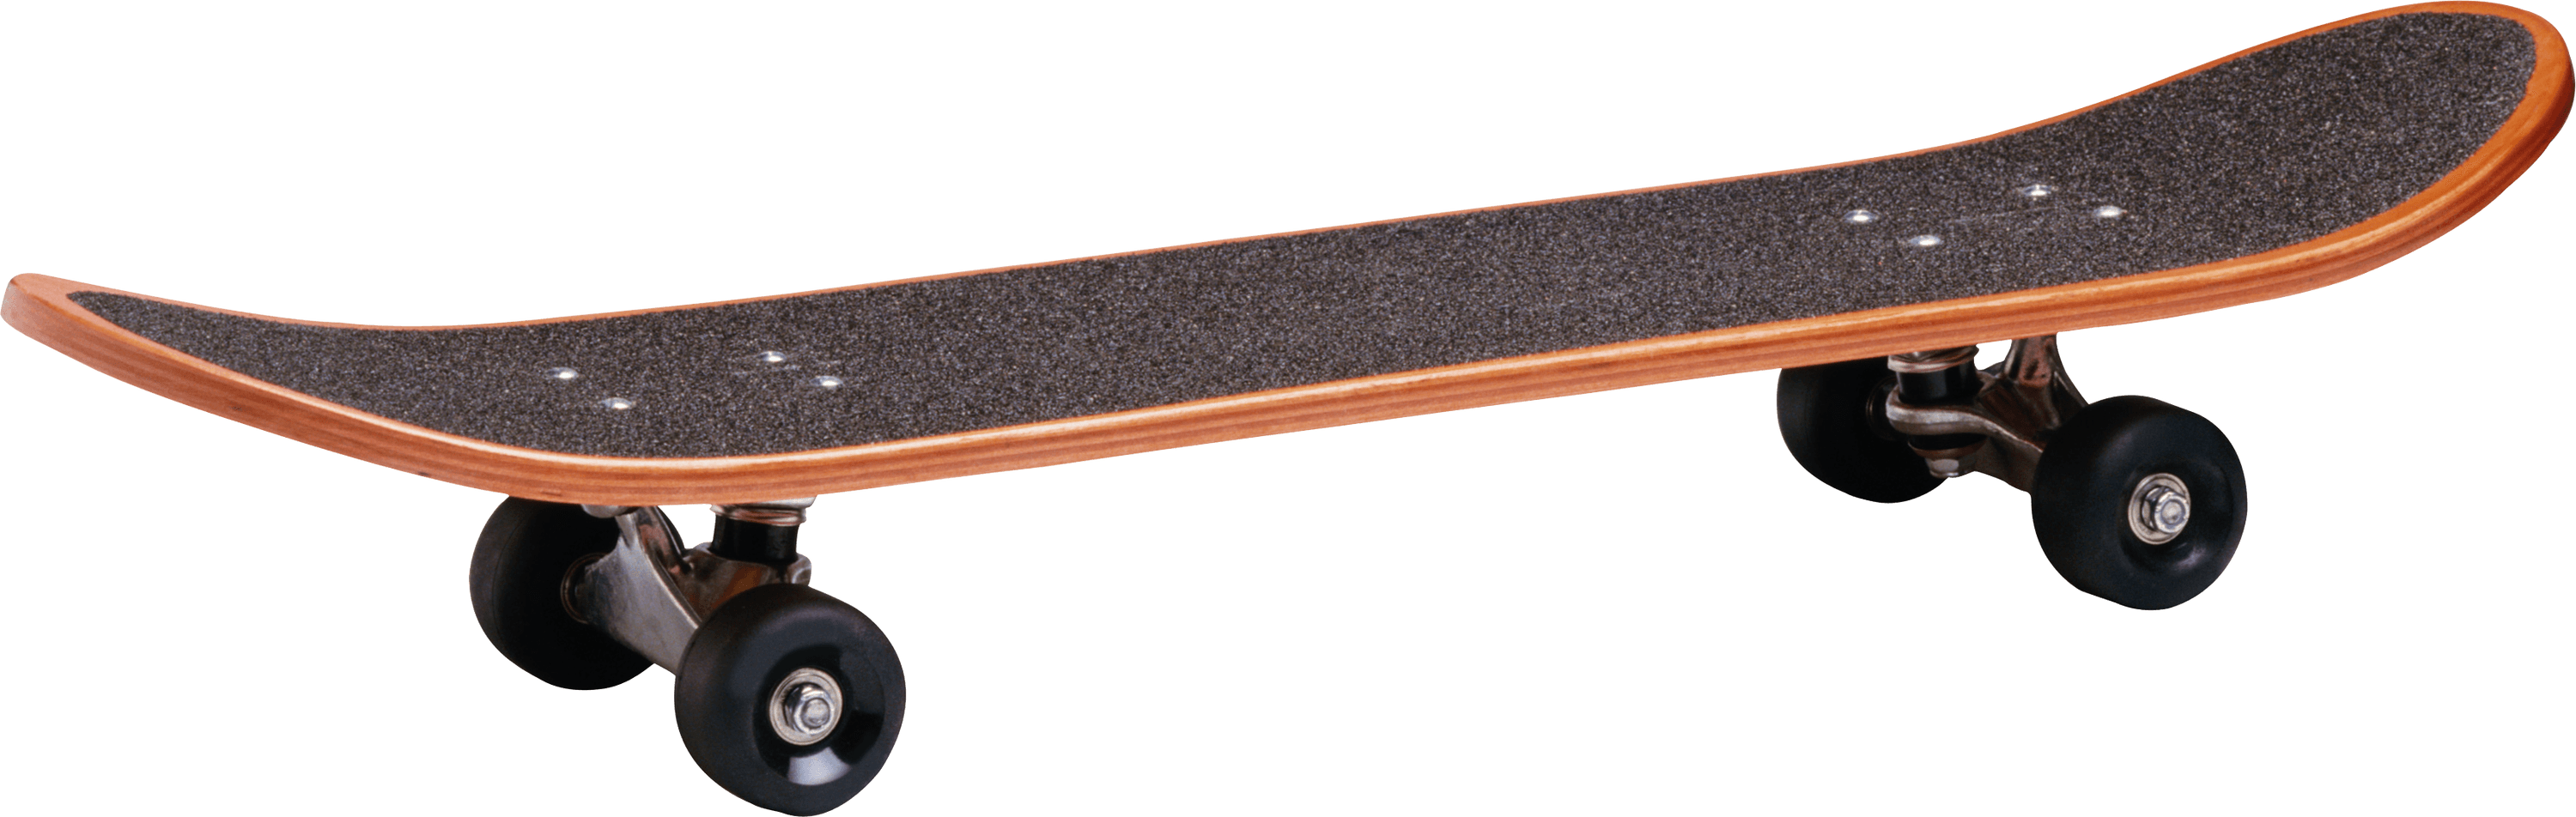 Skateboard Side transparent PNG.